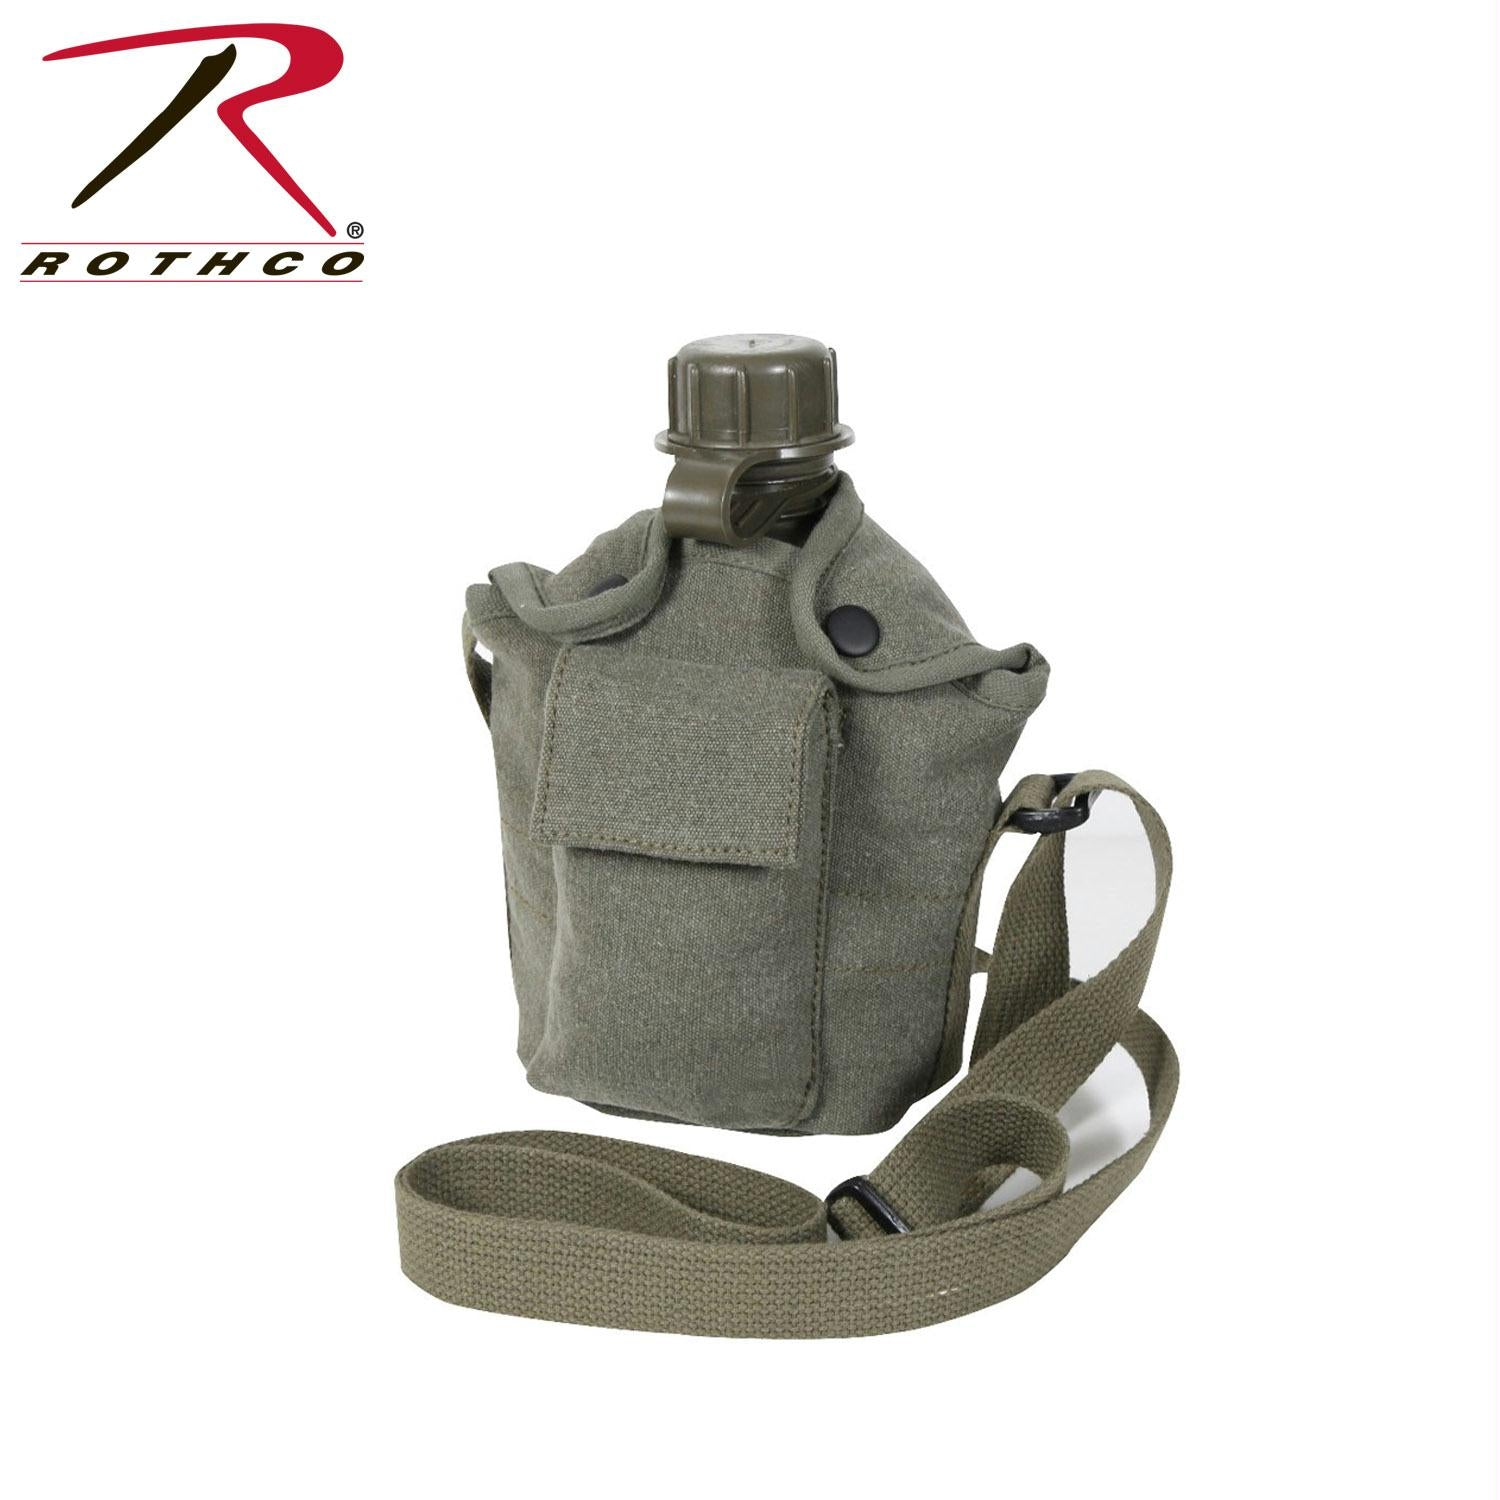 Rothco Vintage Canvas Carry-All Canteen Cover With Shoulder Strap - Olive Drab